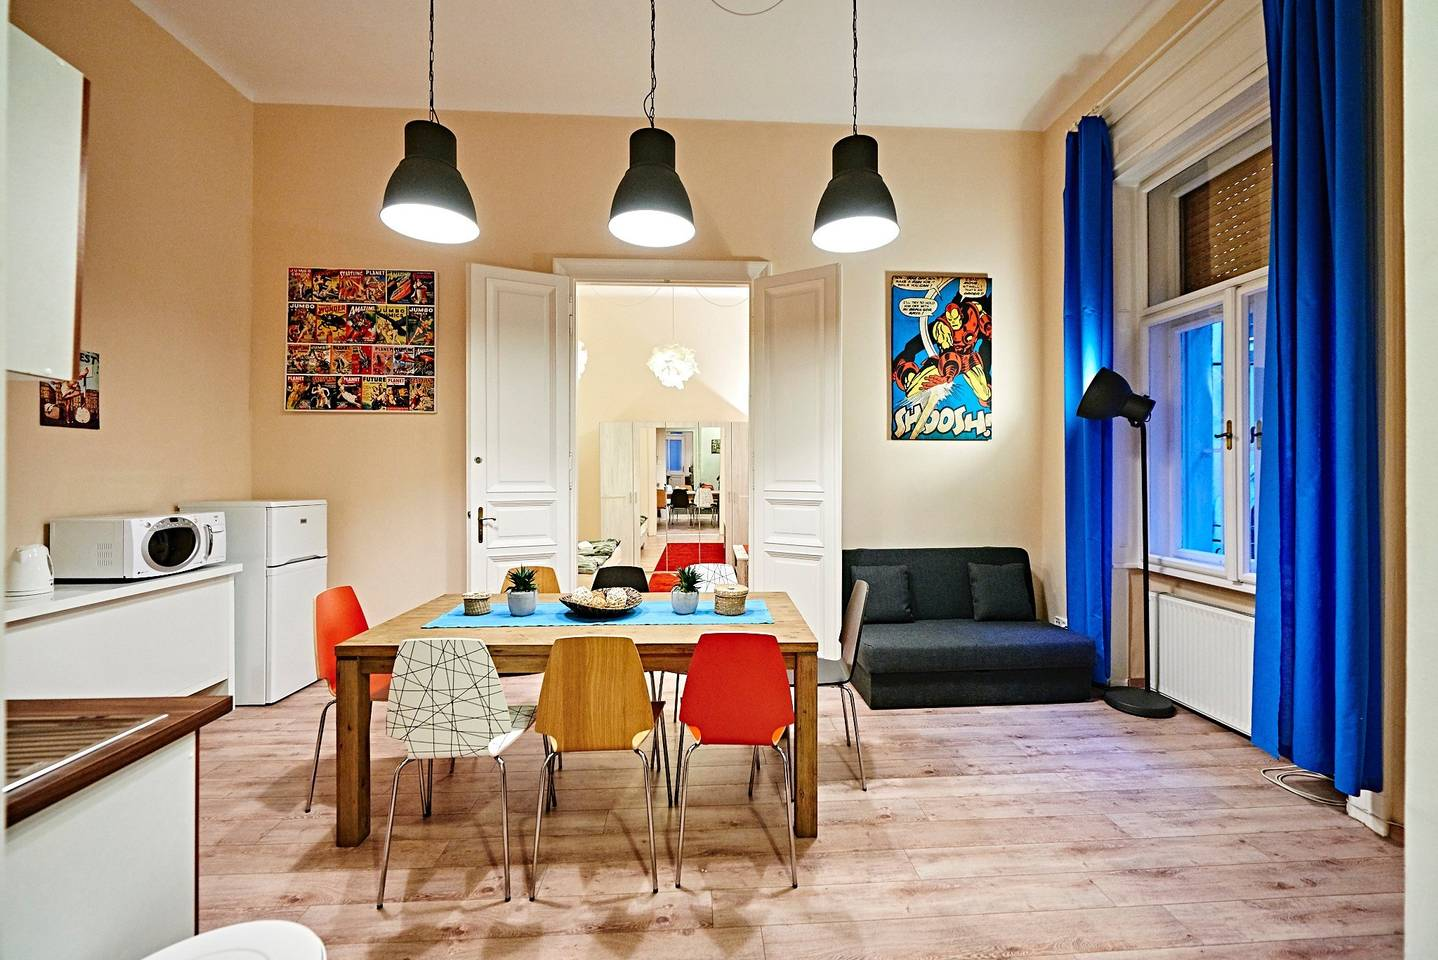 This was our airbnb in budapest, Hungary -- 3 bedrooms, VERY centrally located and only $84. per night